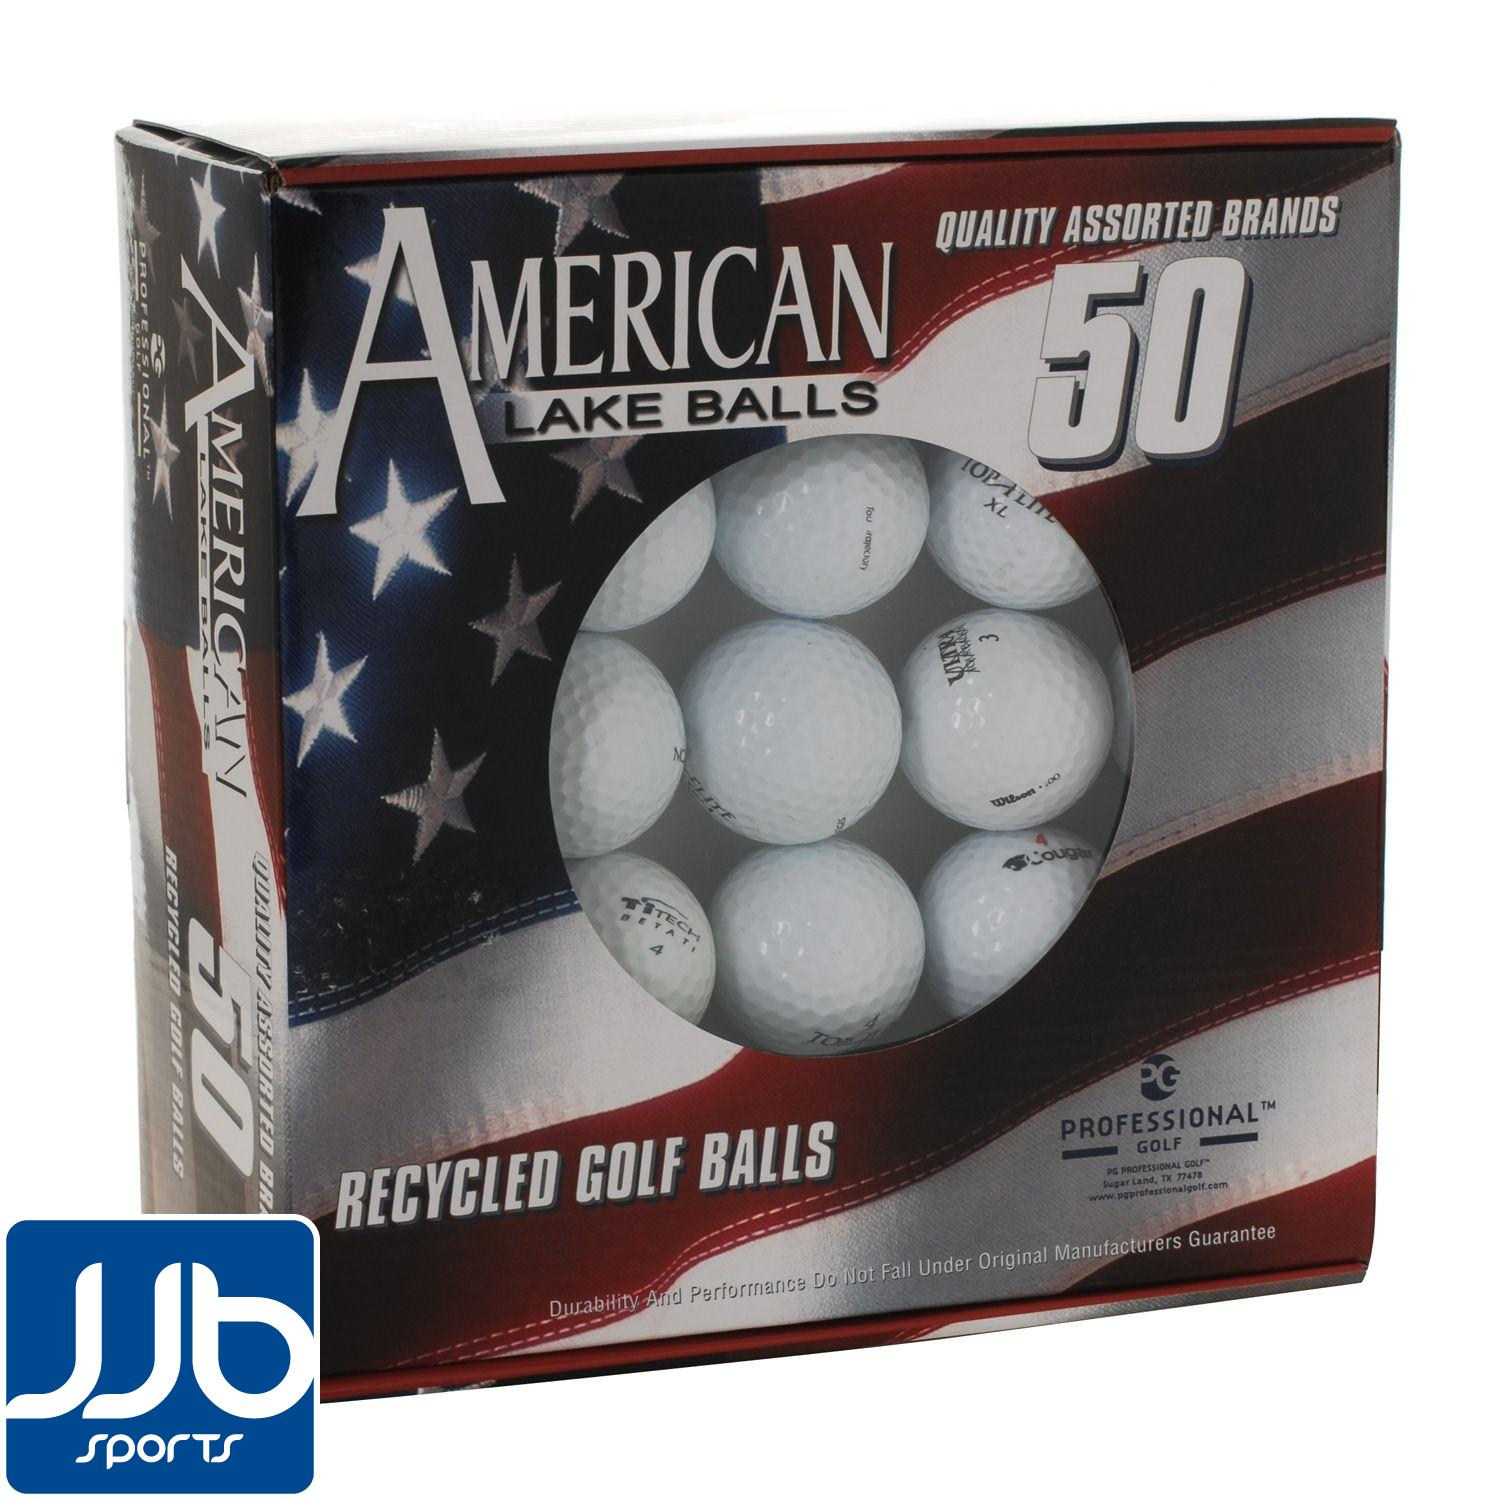 America-Lake-Golf-Balls-50-Pack